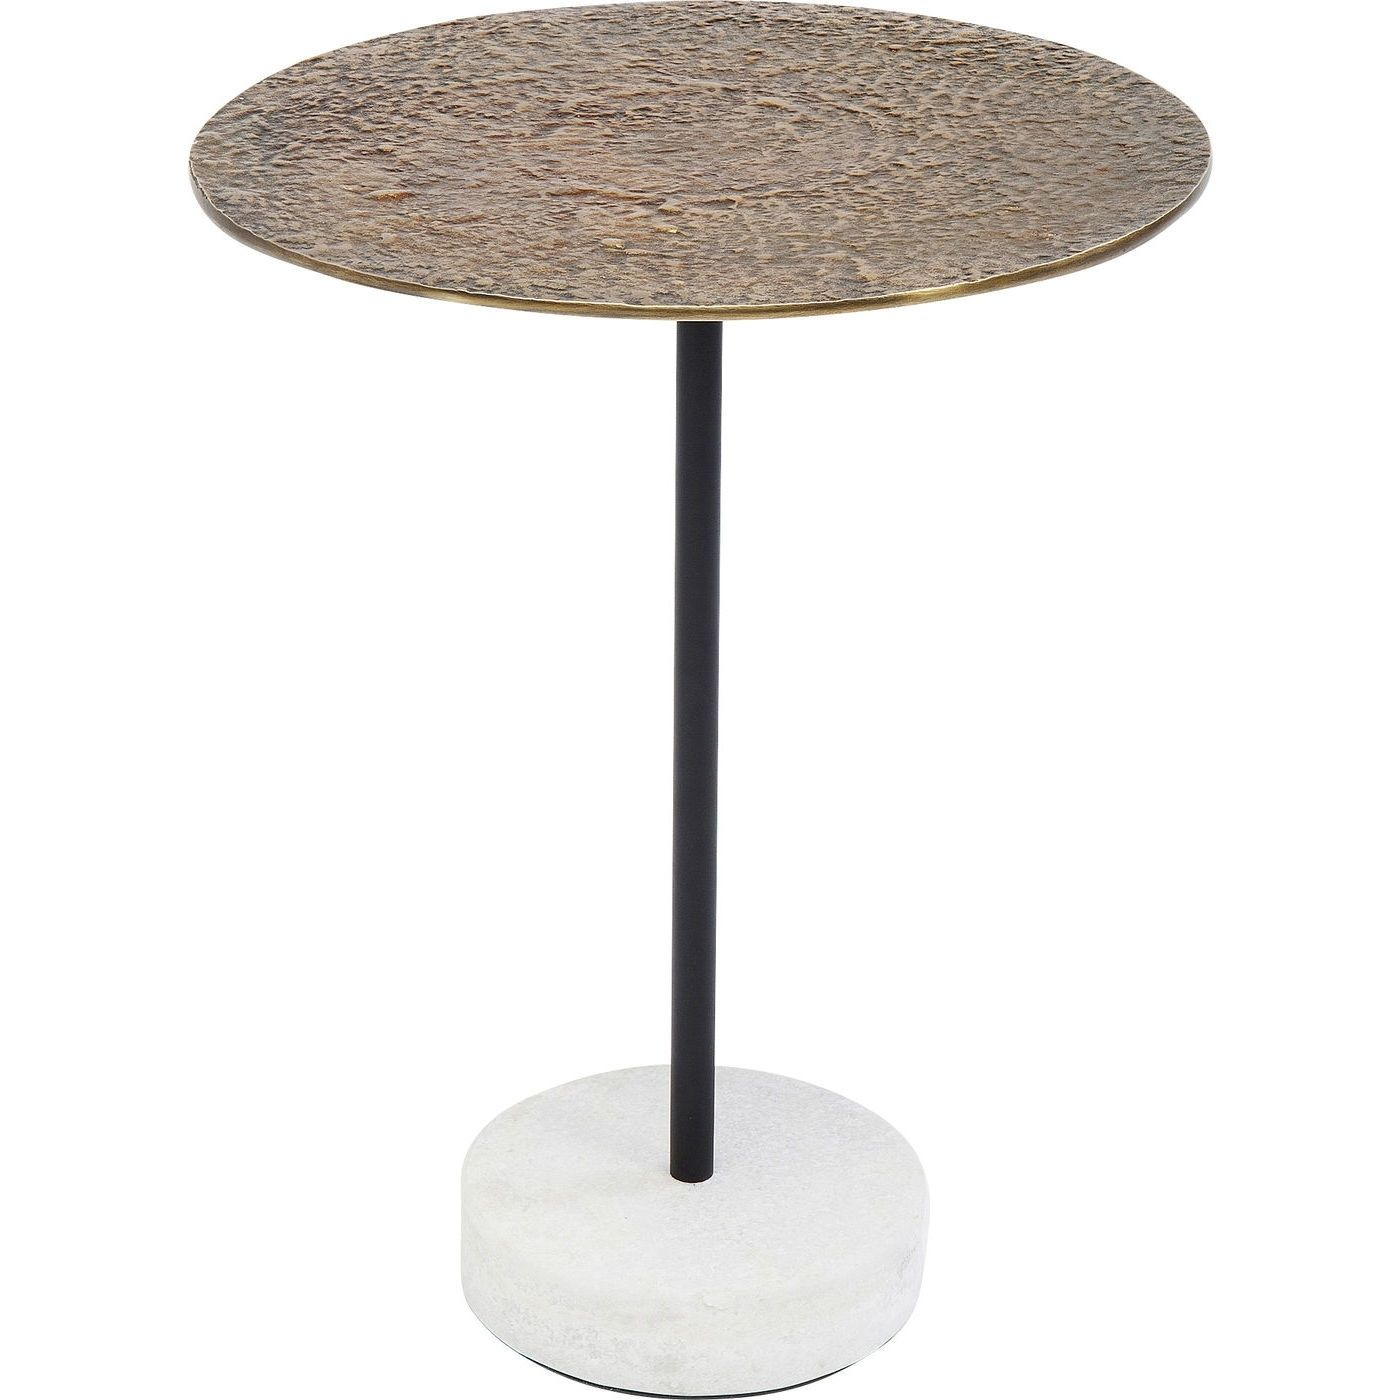 Couchtisch Toscana Pin By Ladendirekt On Tische Table Furniture Decor